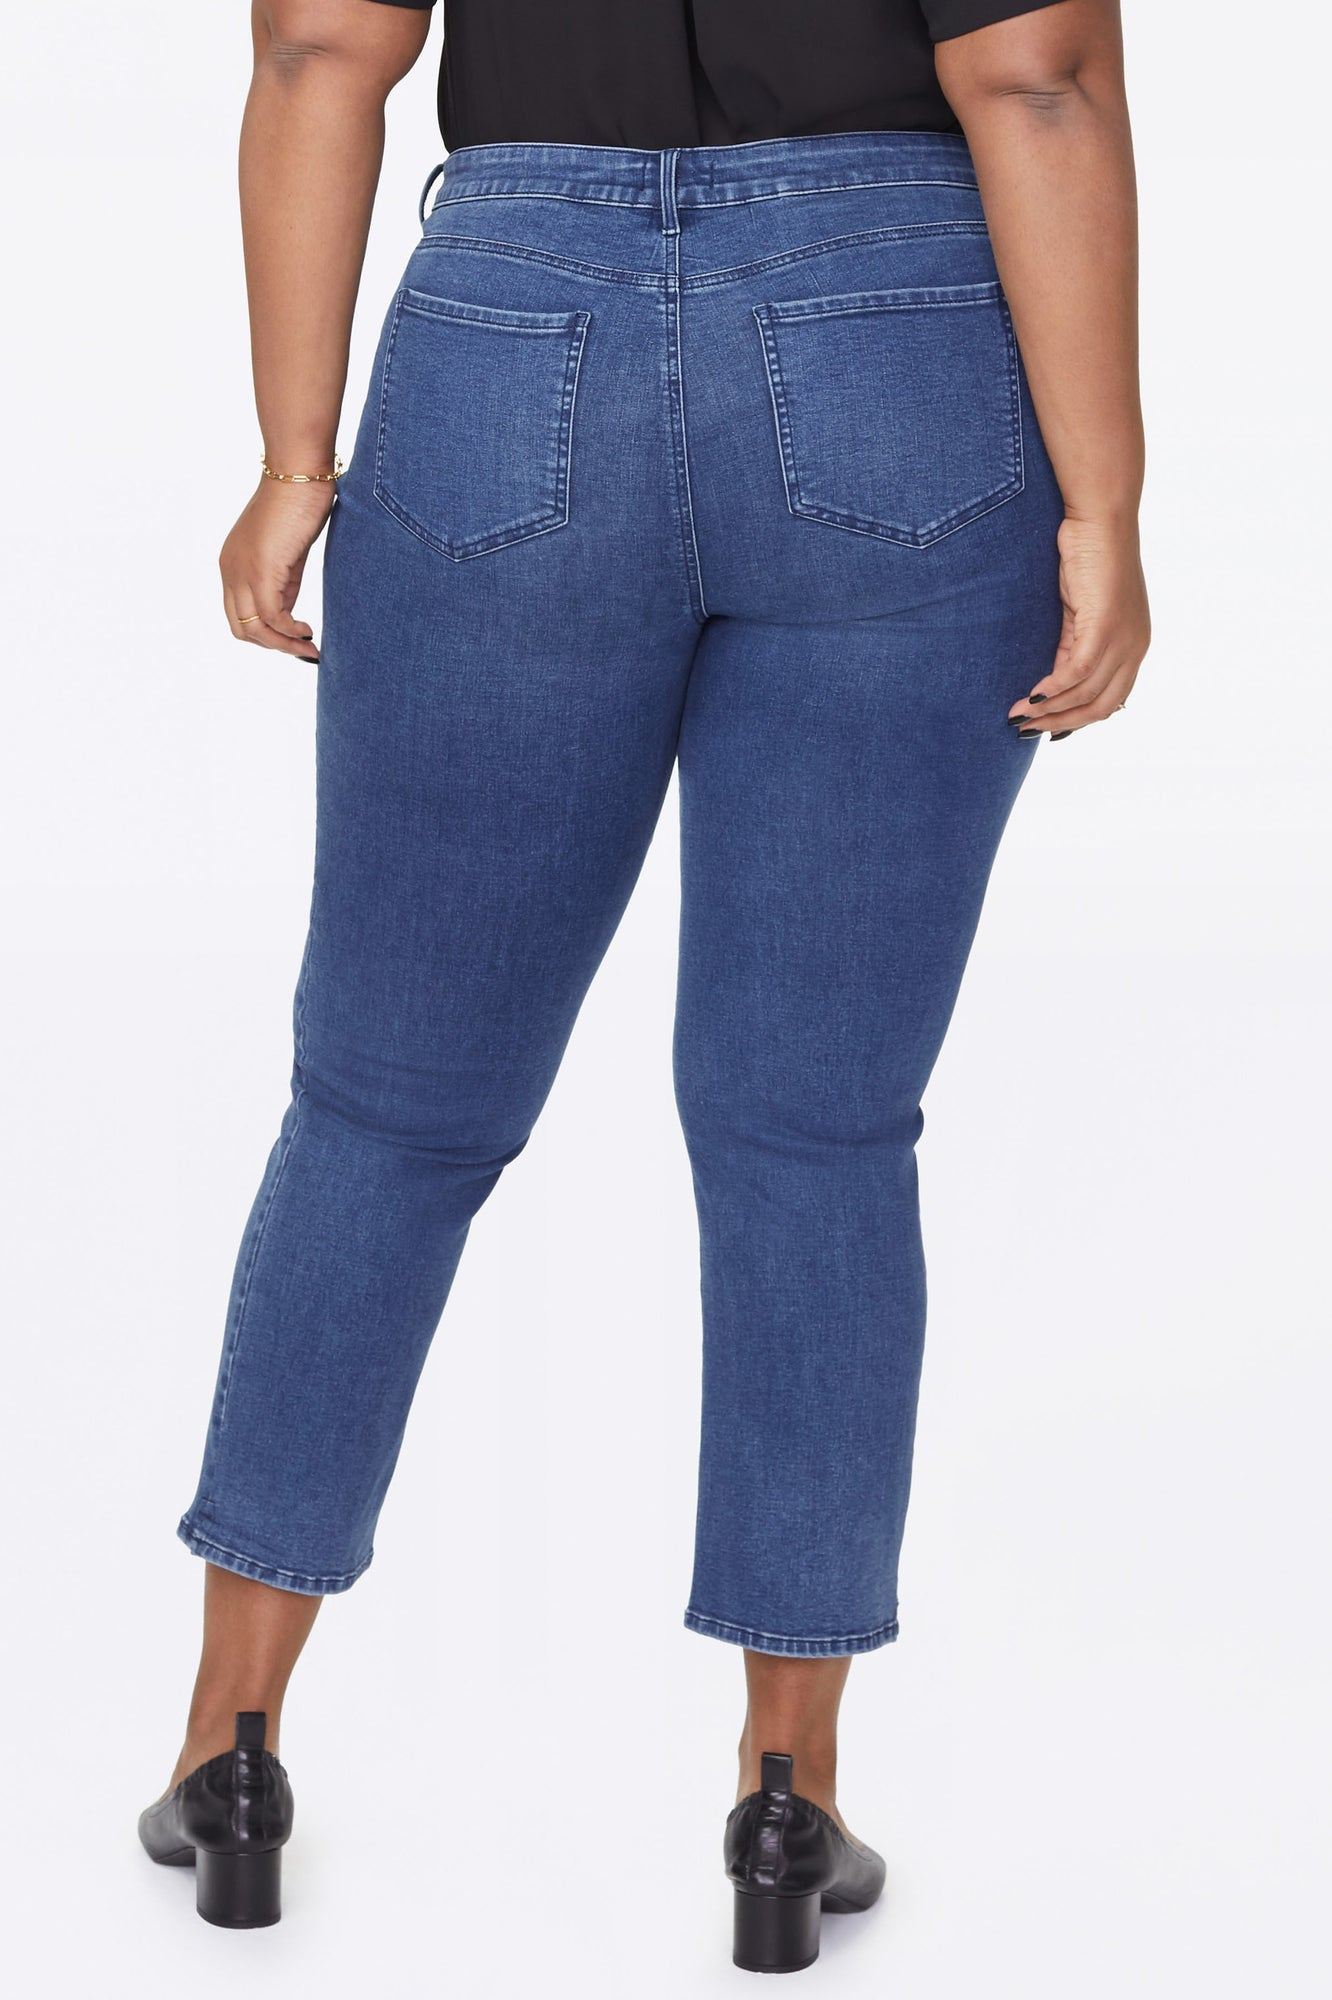 Marilyn Straight Ankle Jeans In Plus Size - NEVIN